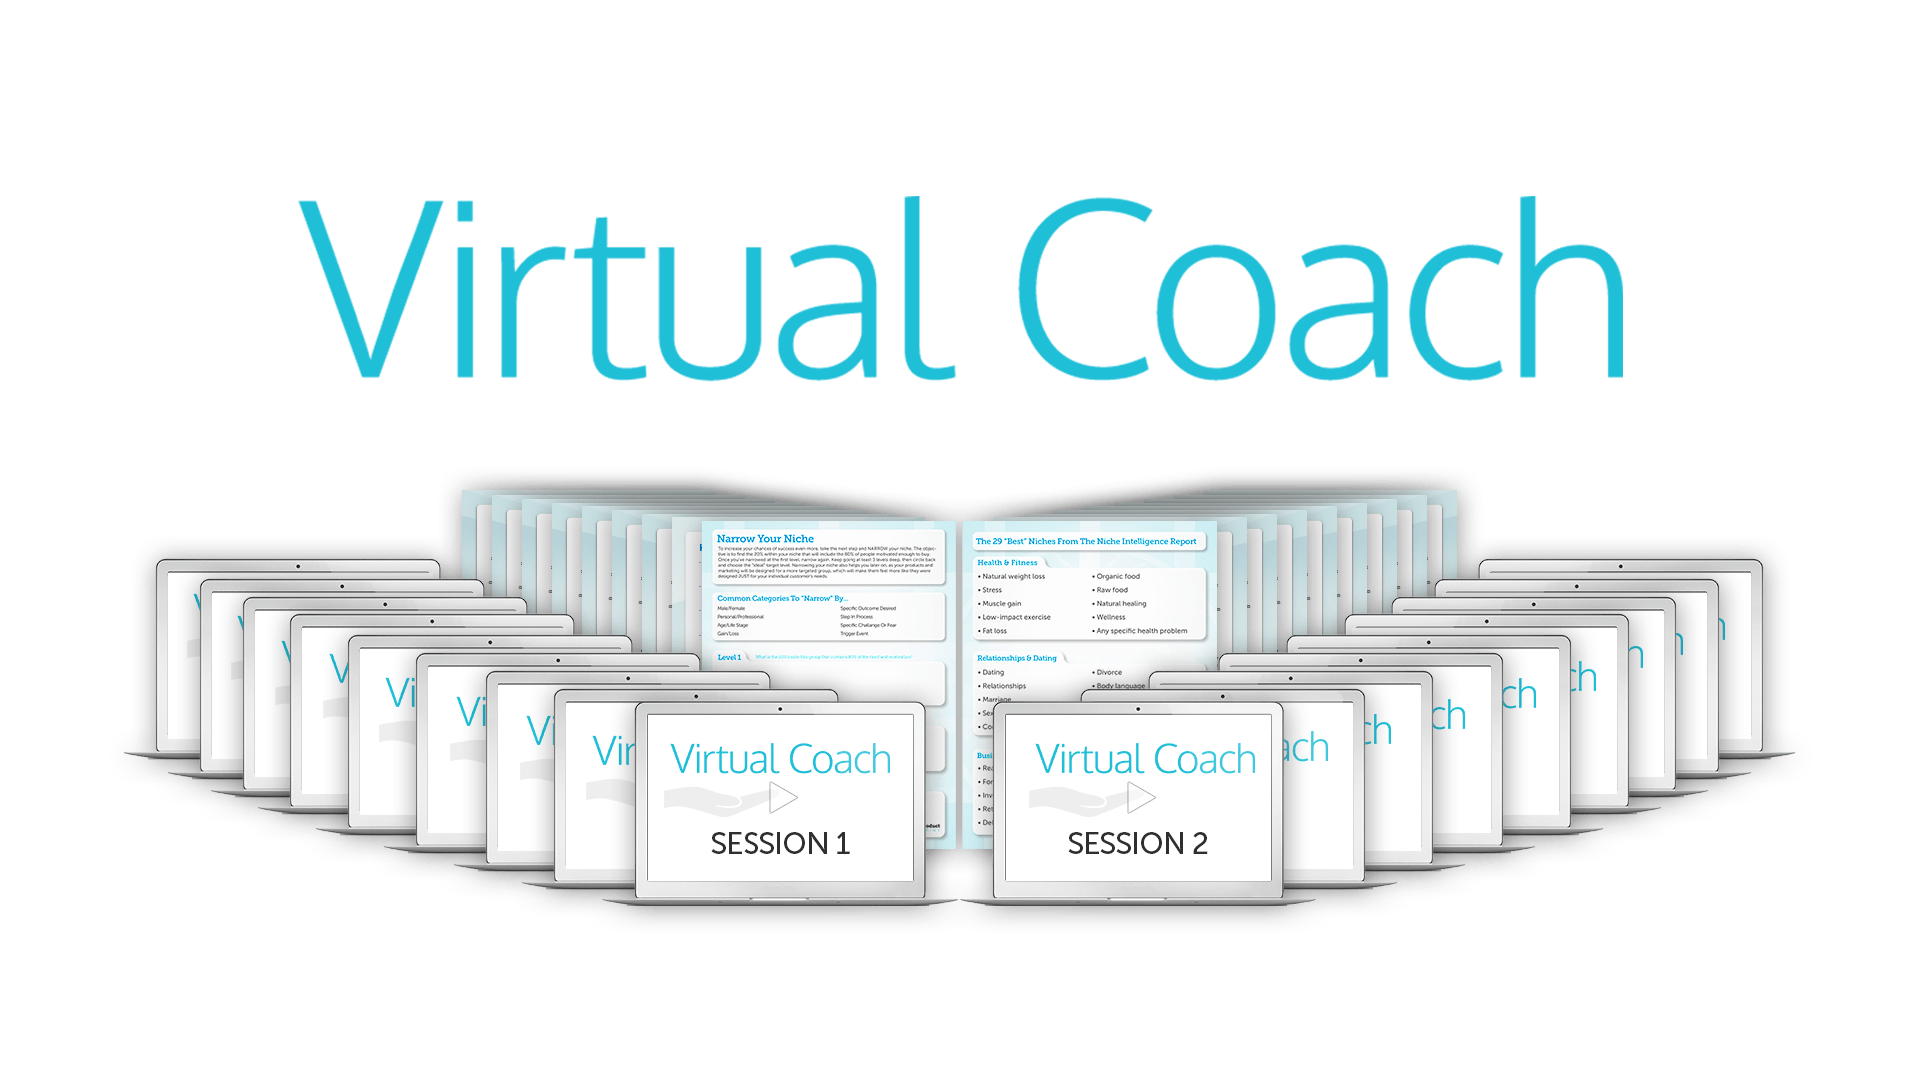 Virtual Coach by Eben Pagan